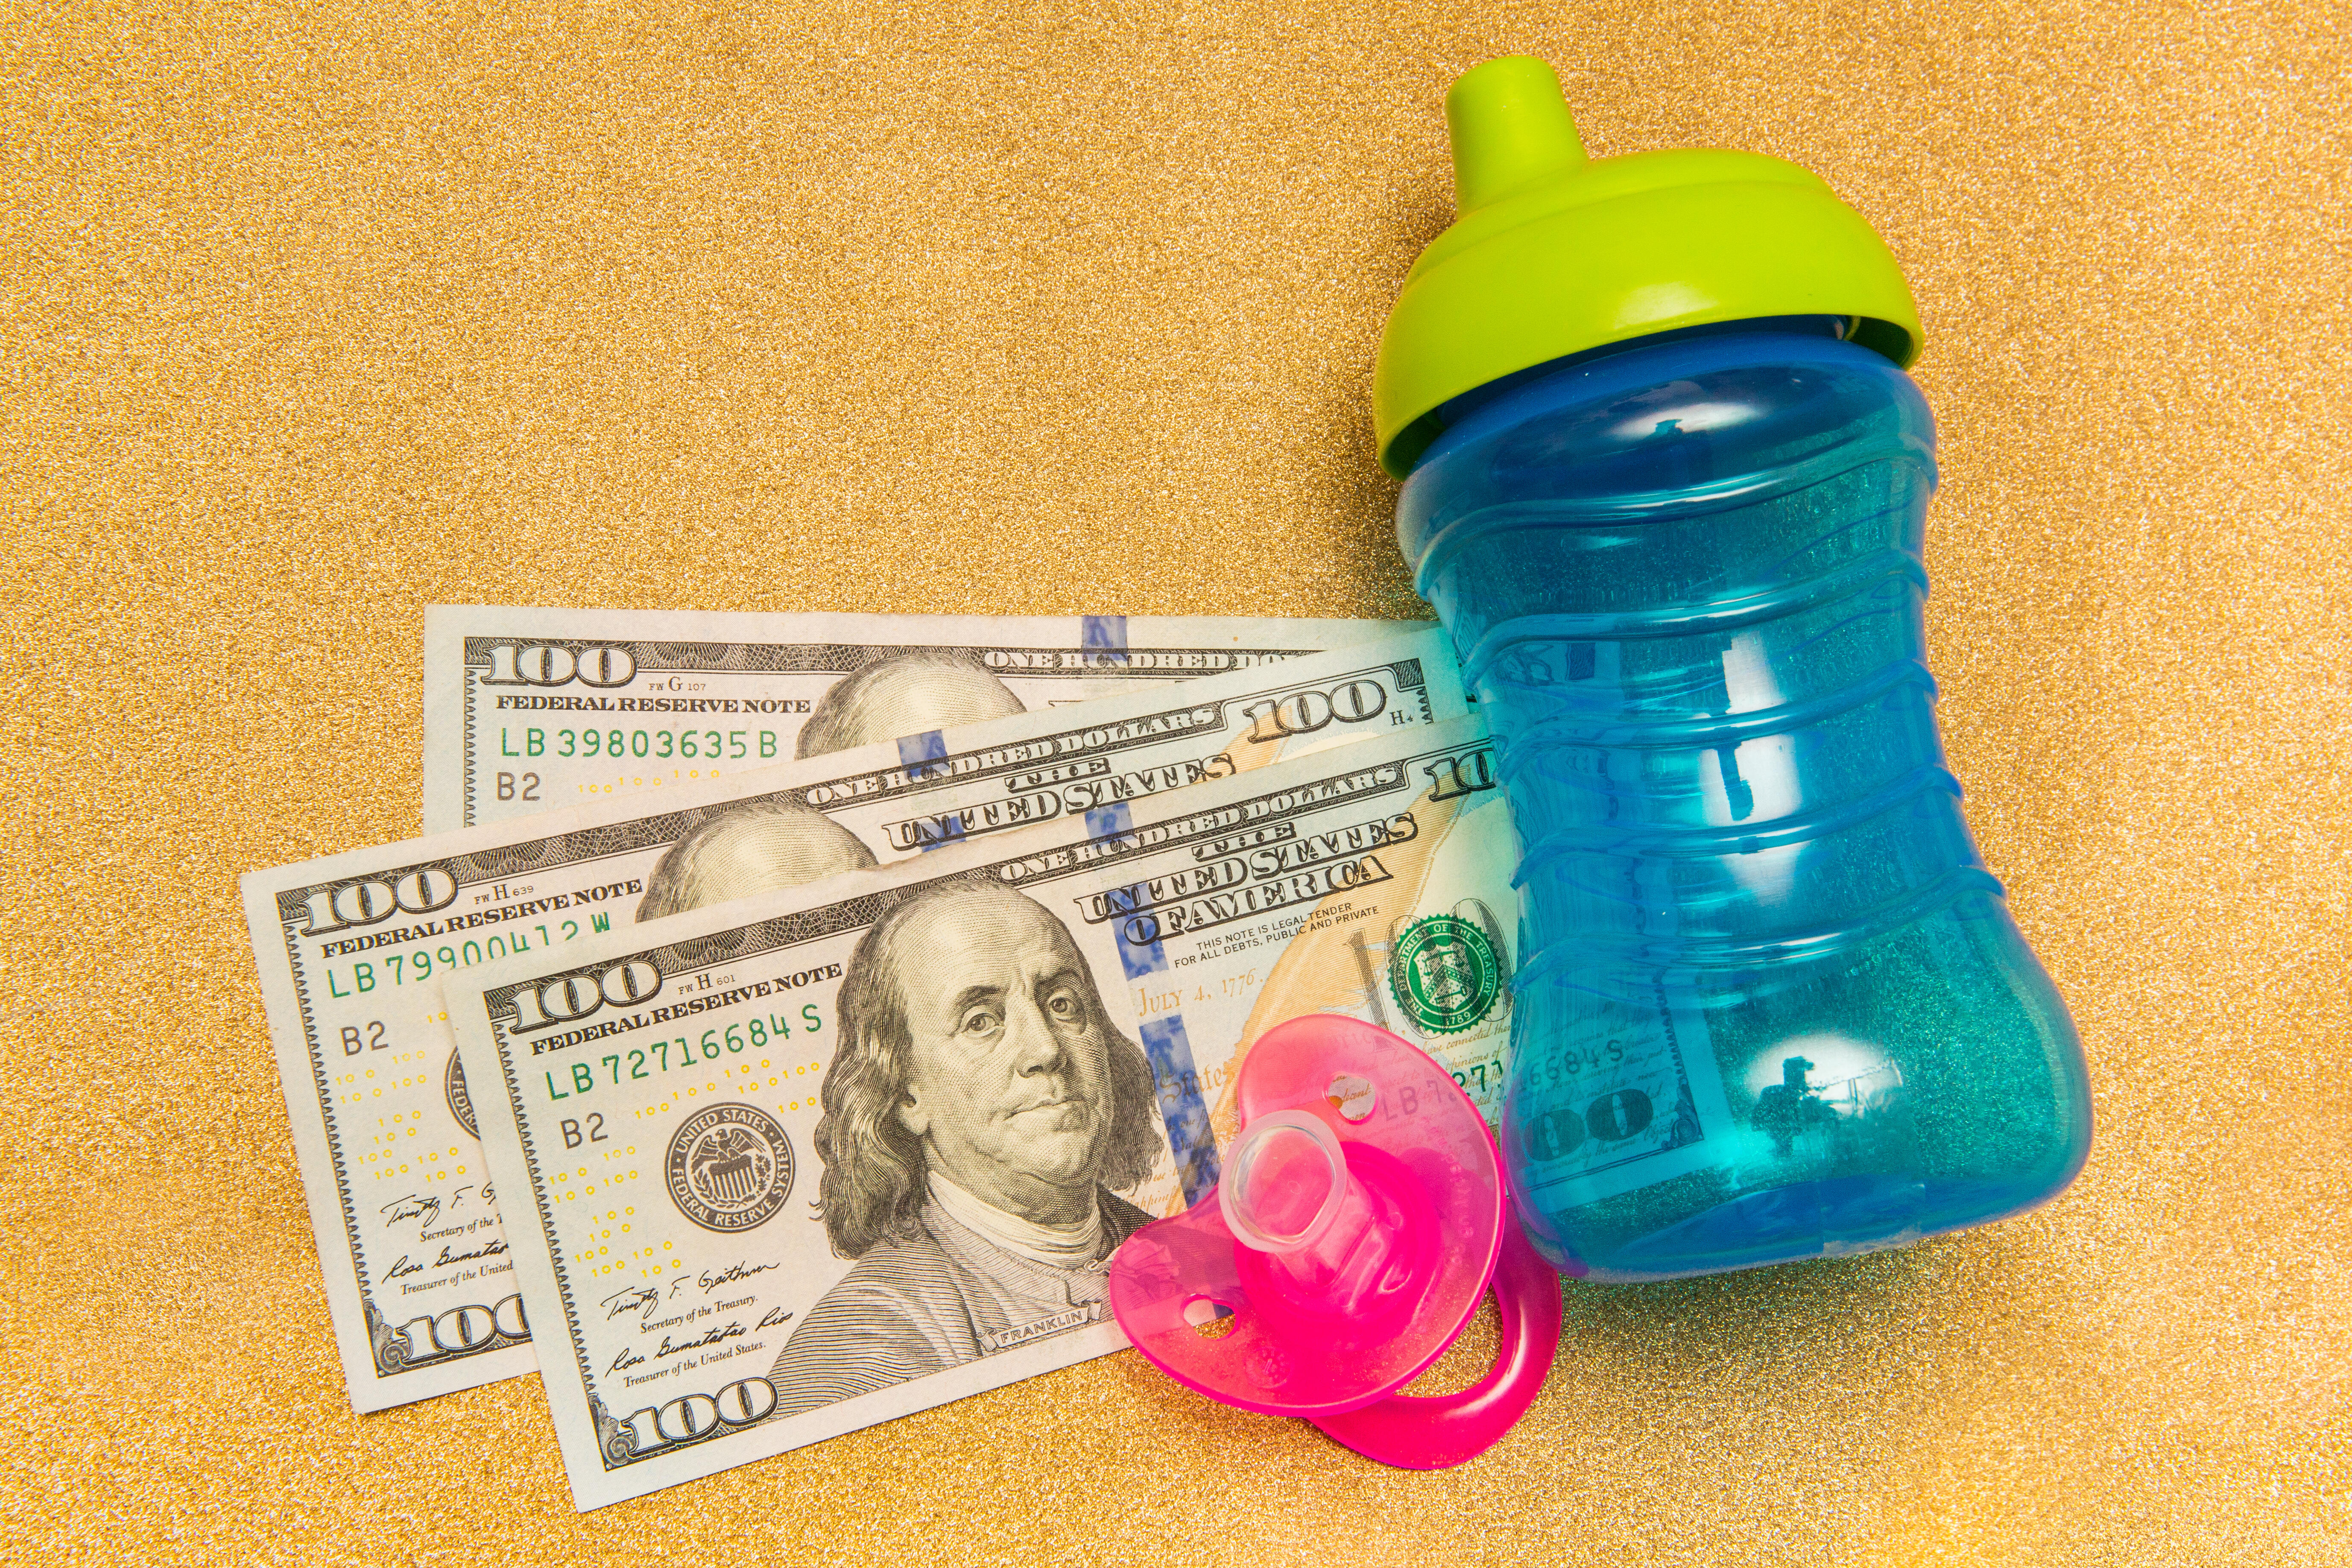 009-cash-stimulus-child-tax-credit-3600-calculator-cnet-2021-2020-federal-government-money-baby-family-pacifier-sippy